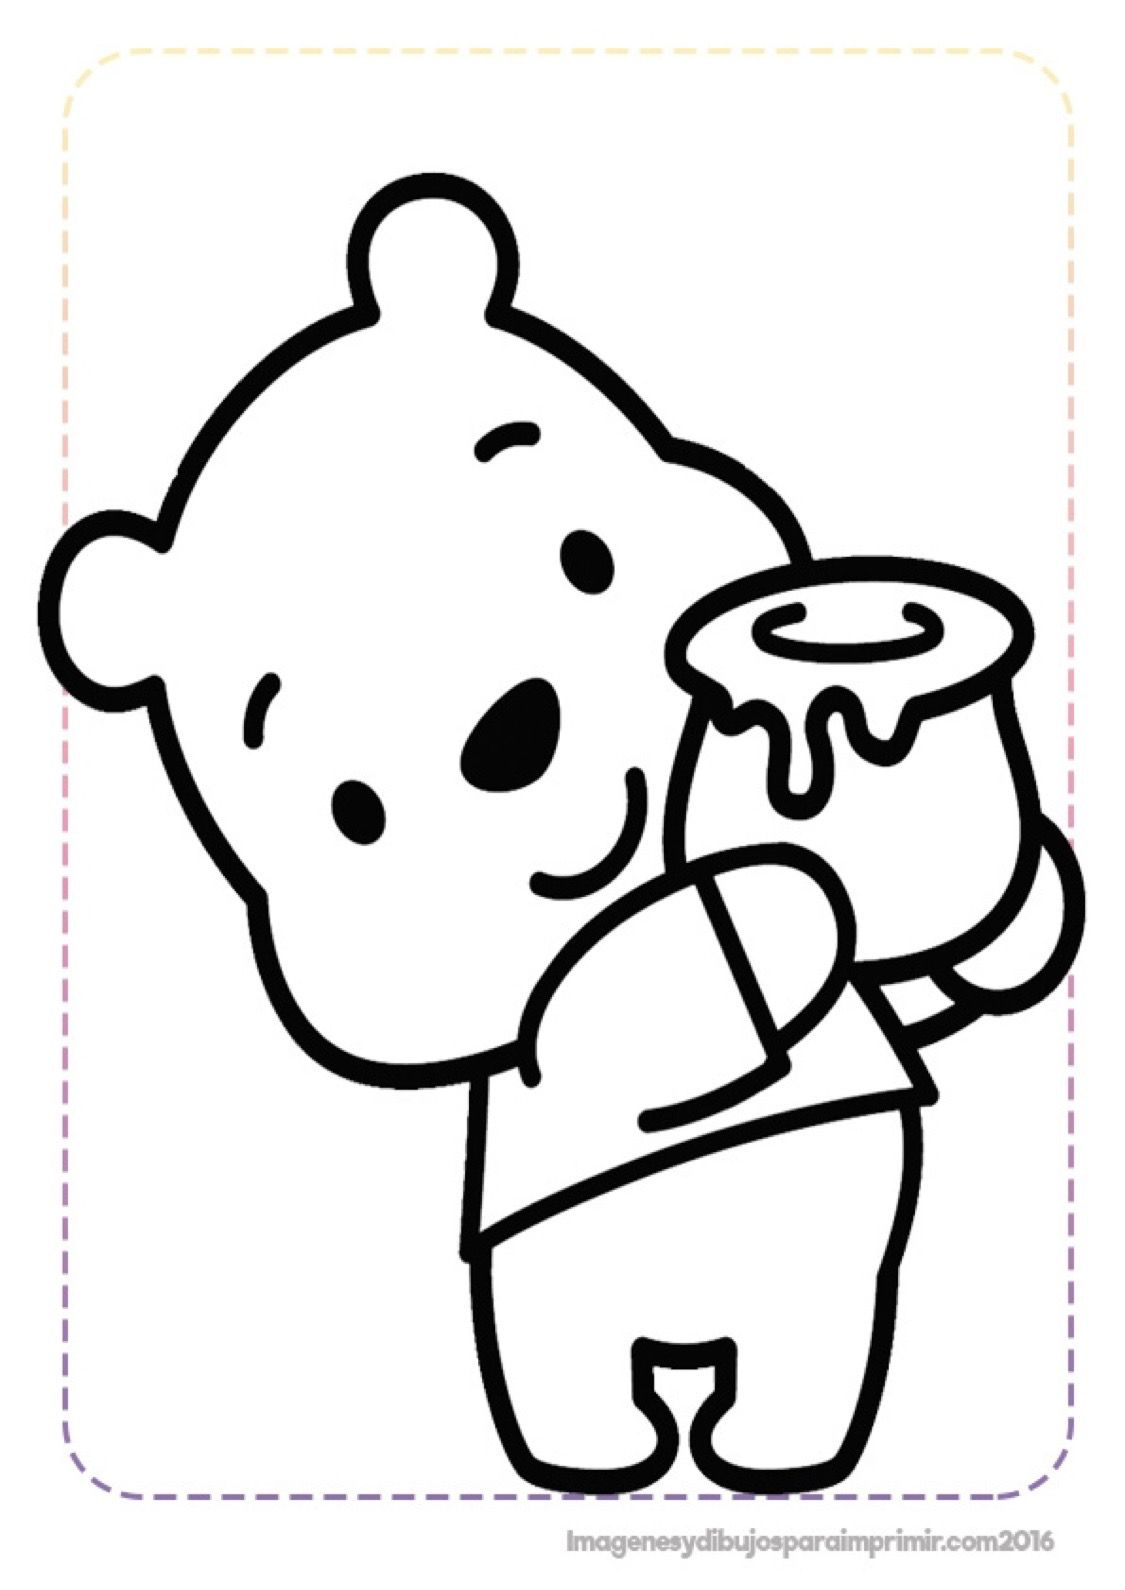 Download Or Print This Amazing Coloring Page Winnie The Pooh Coloring Pages Eeyore Cooloring C Disney Drawings Baby Cartoon Characters Disney Coloring Pages